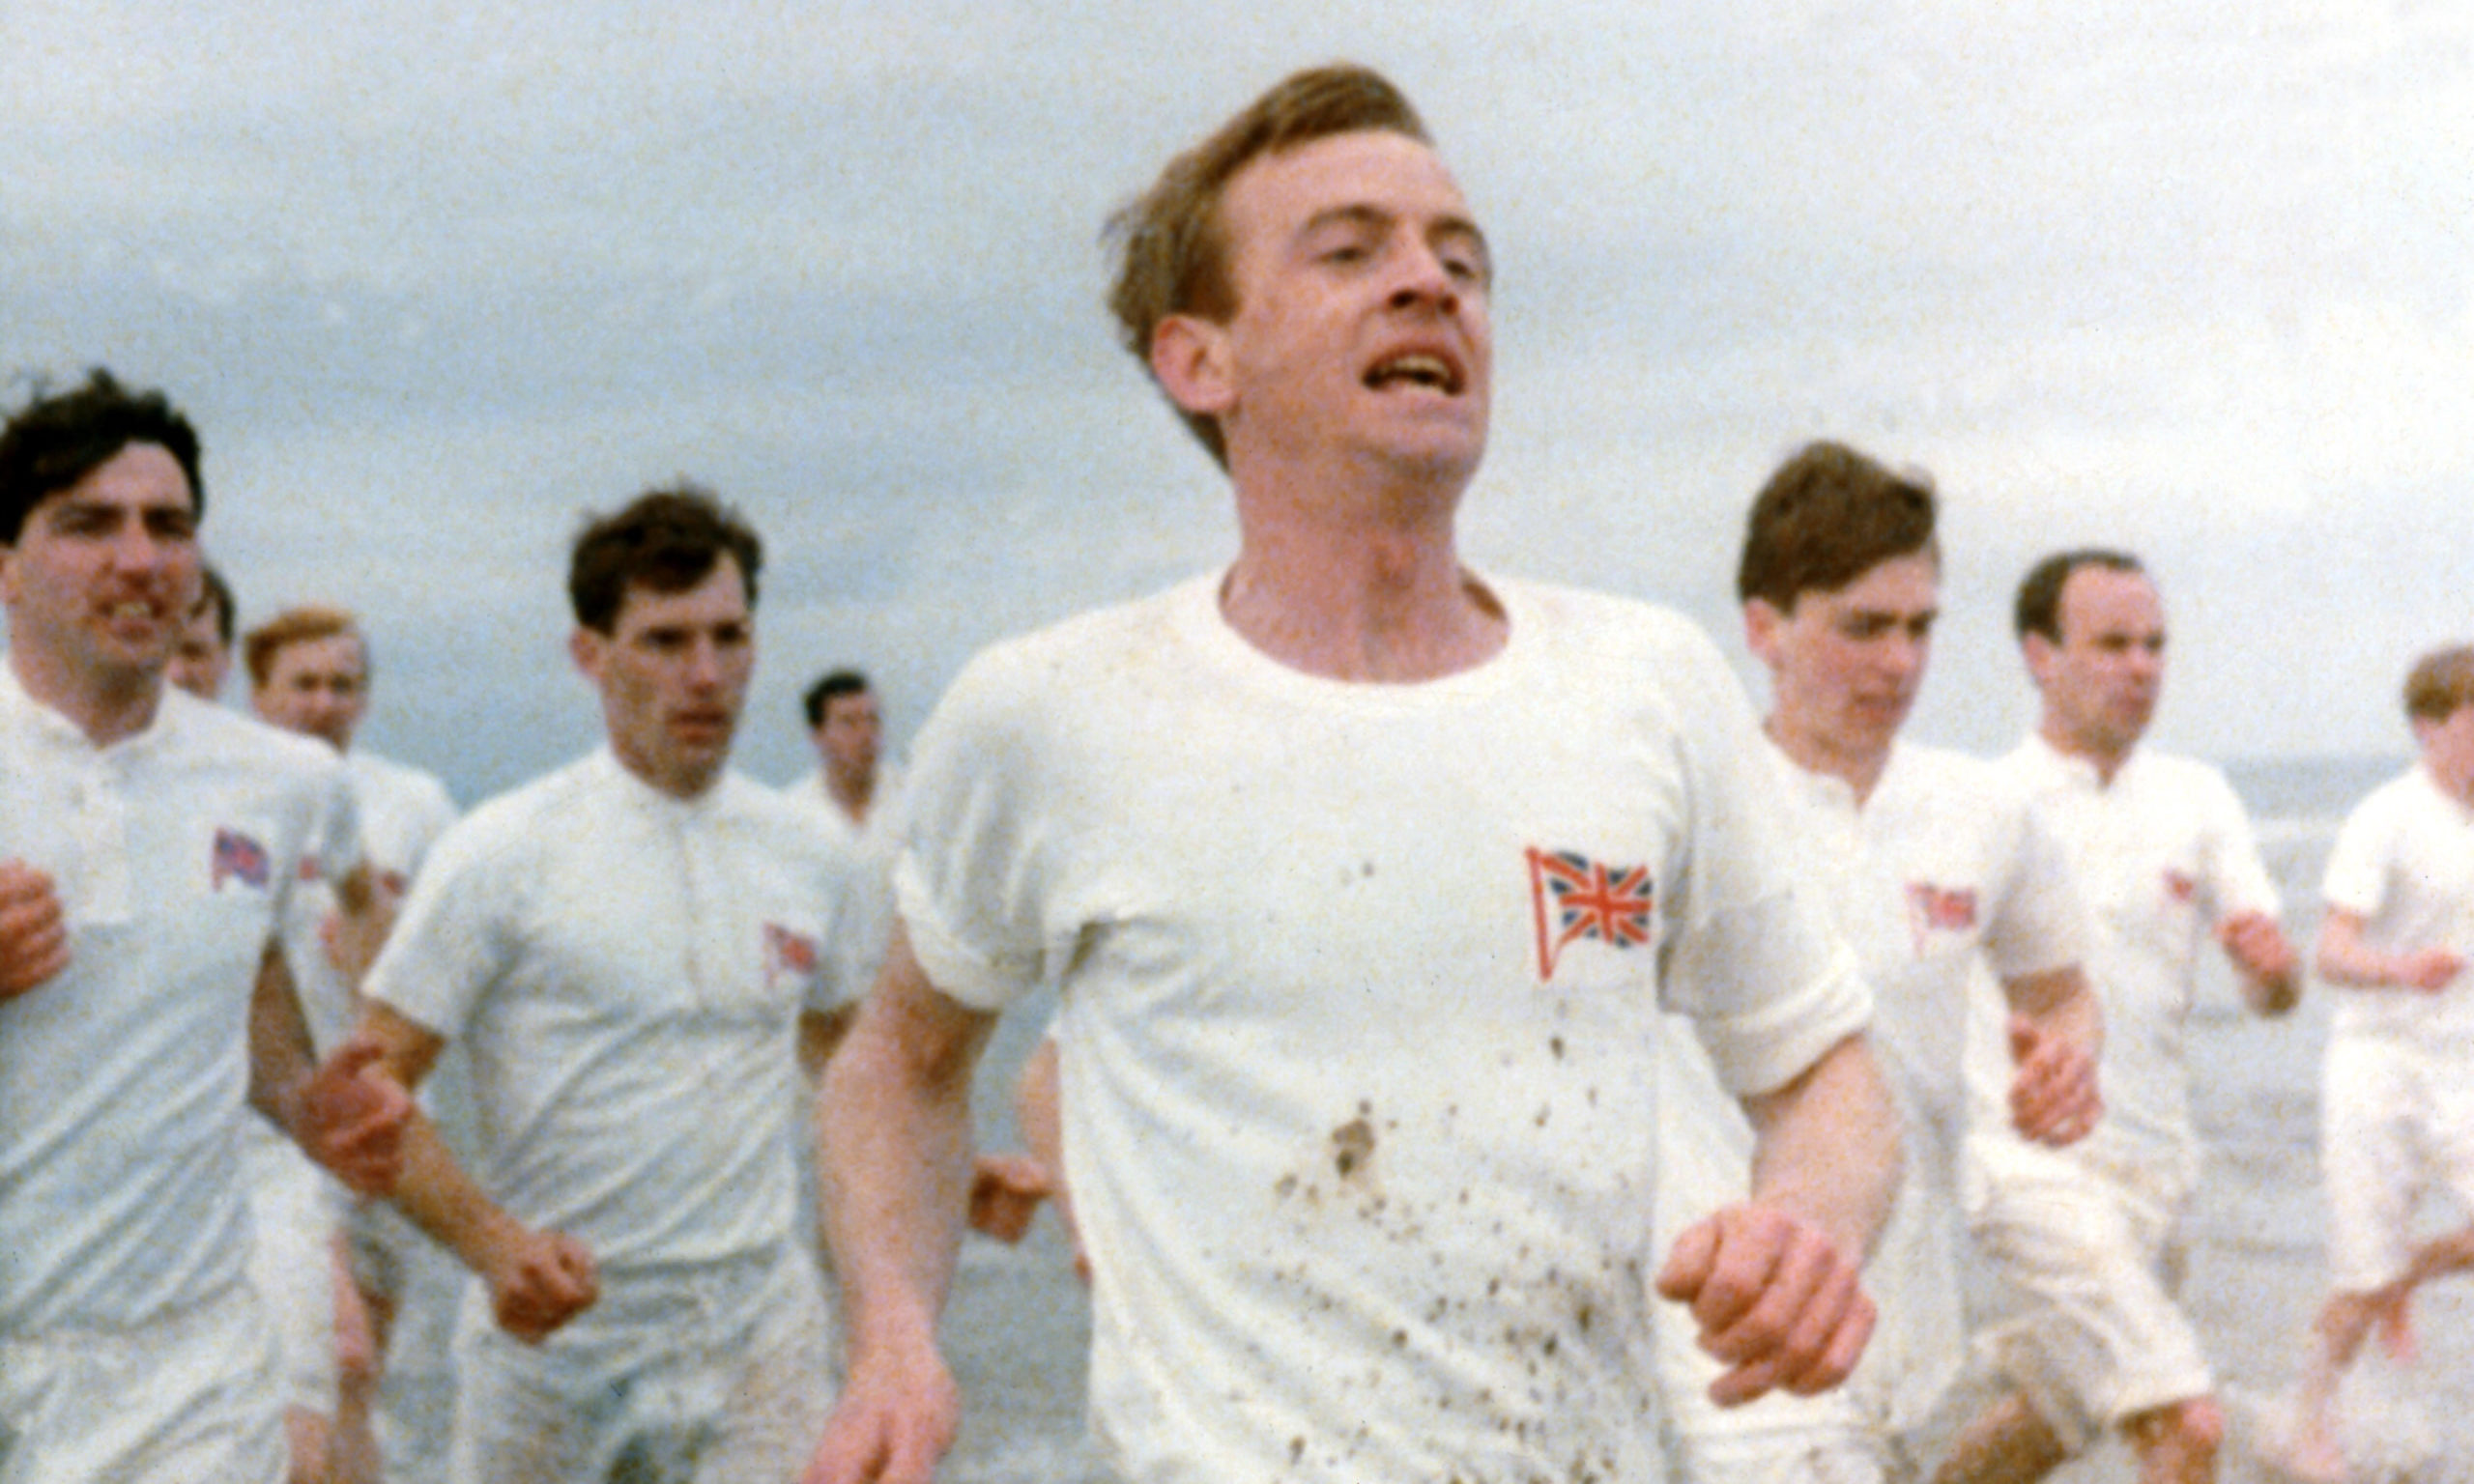 The famous 'running scene' from the opening titles of Chariots of Fire